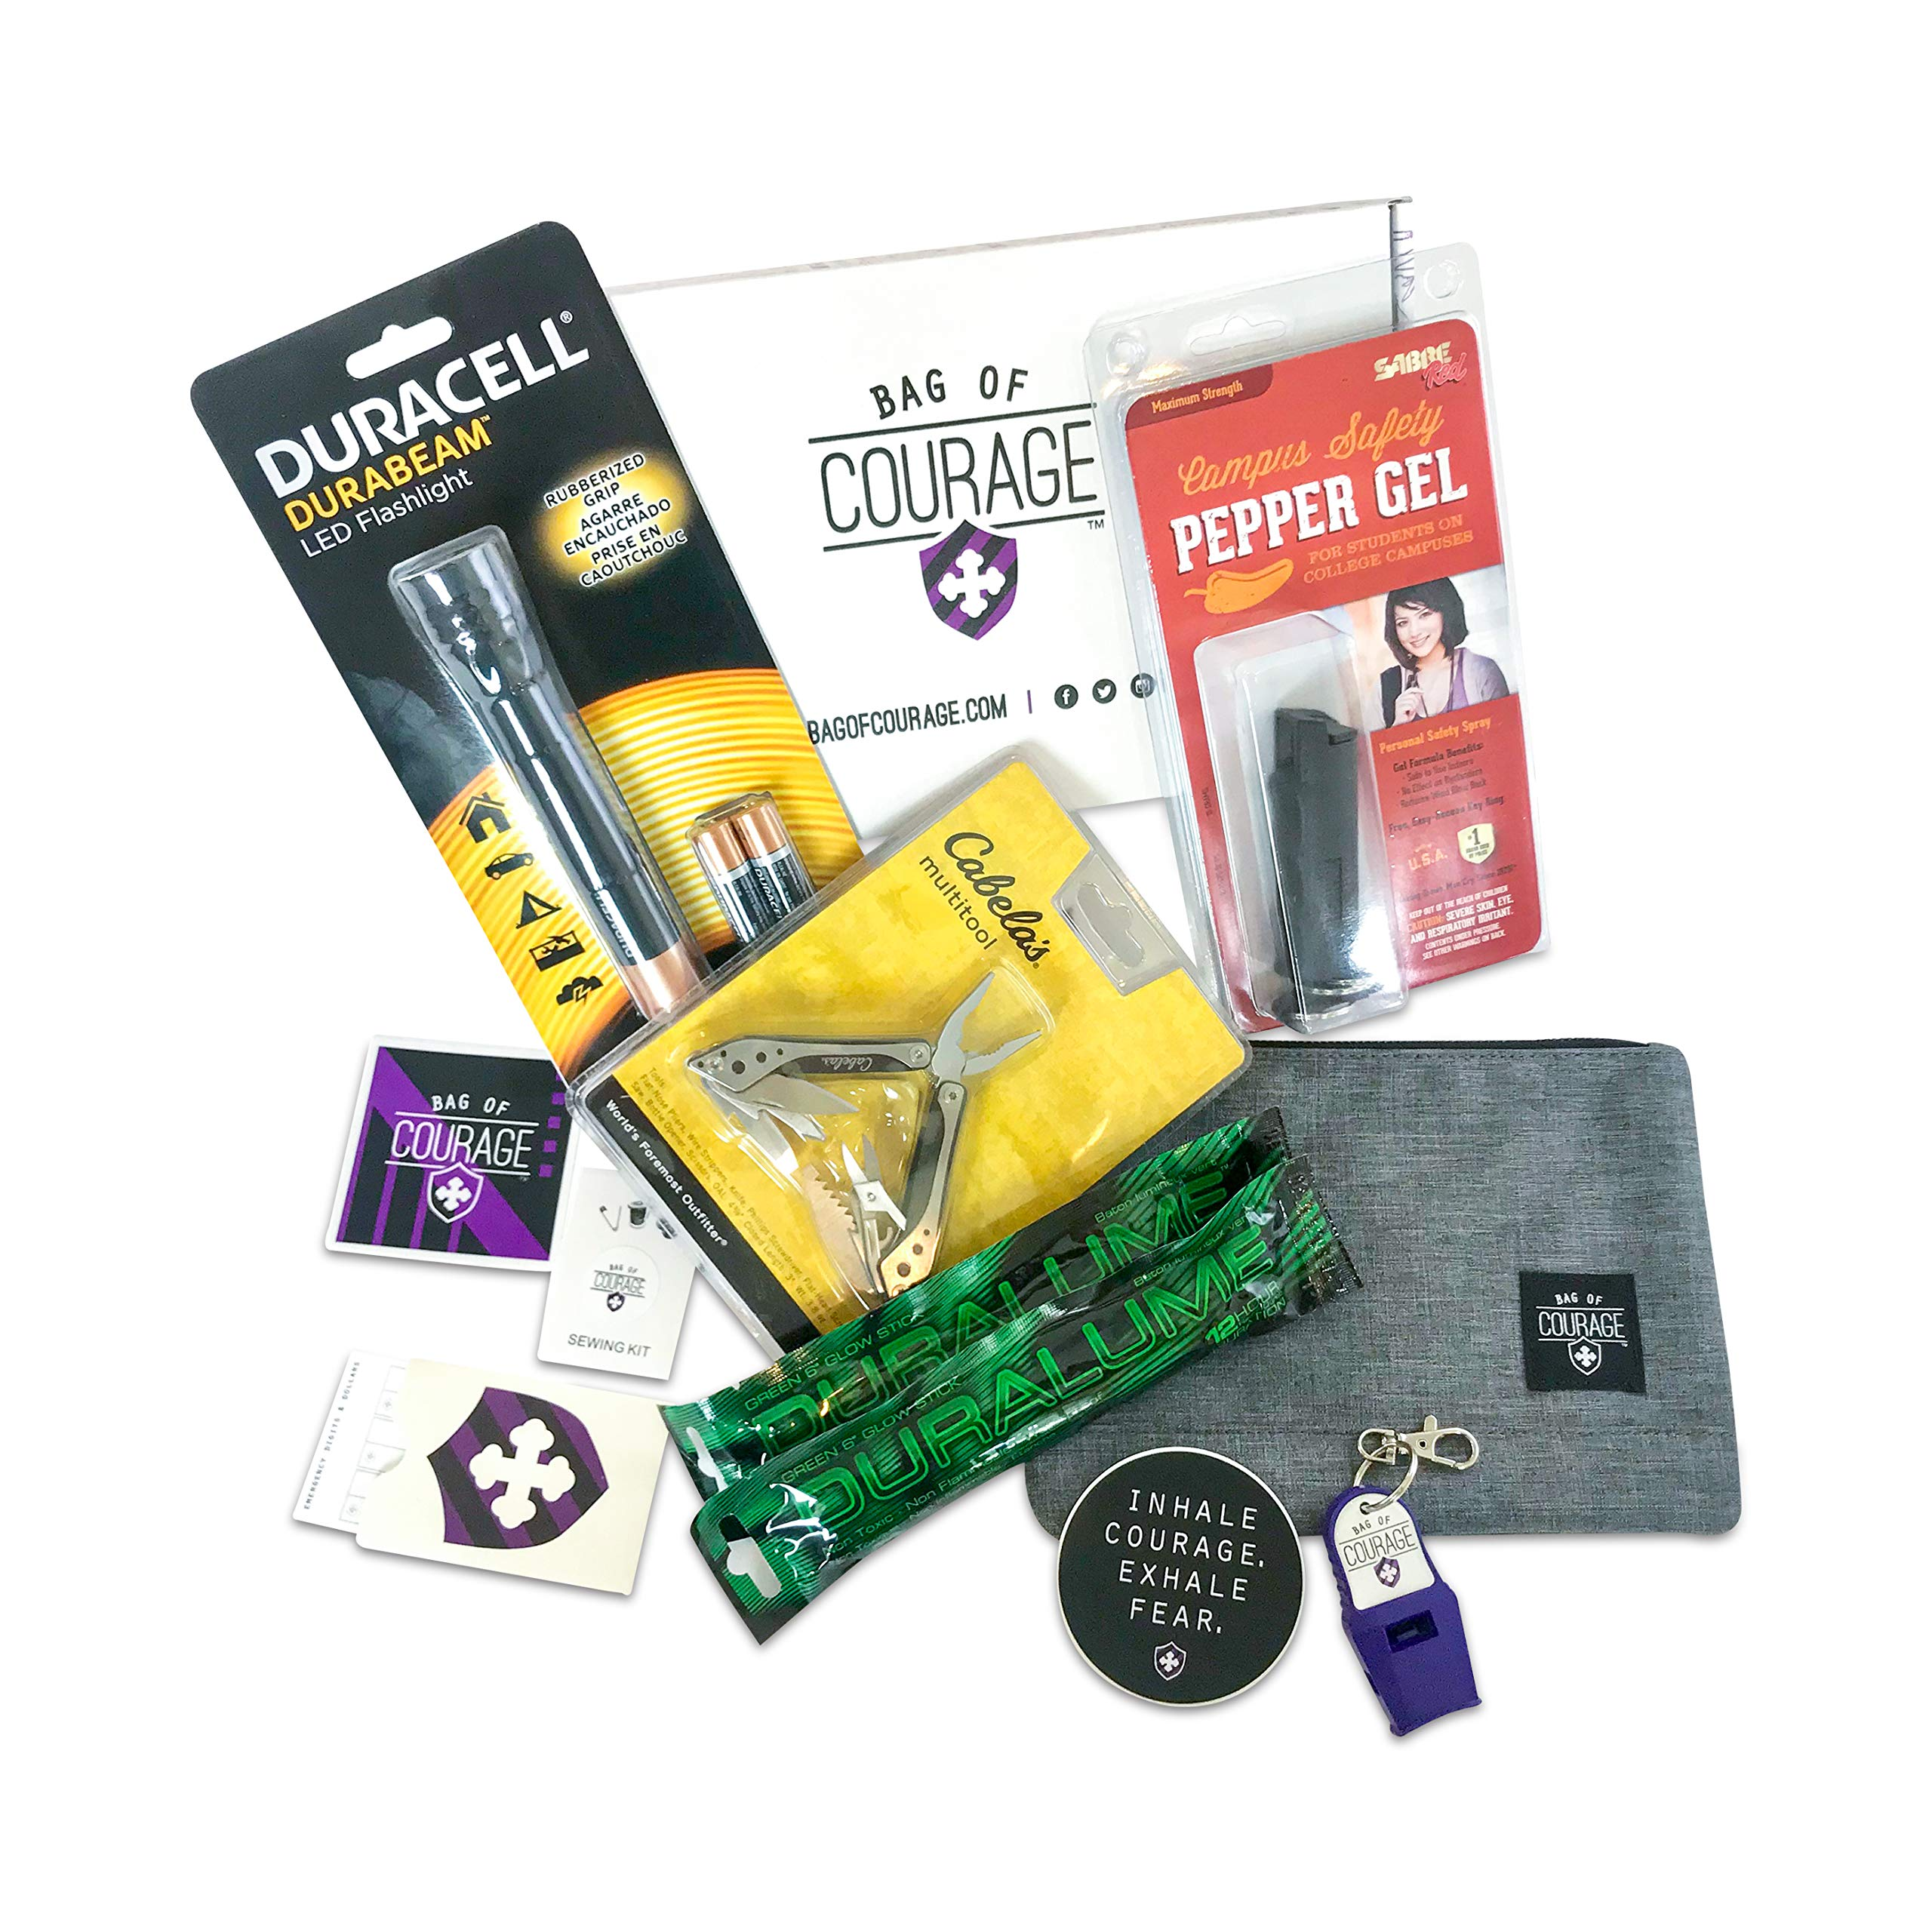 College Safety KIT - Dorm Room Essentials- Sabre Red Campus Safety Gel Spray - LED Flashlight - Cabela's Multitool + Emergency Whistle, Sewing Kit, 2 Emergency Glow Sticks; Lot of 11 as Shown by Bag of Courage / Prepared and Courageous